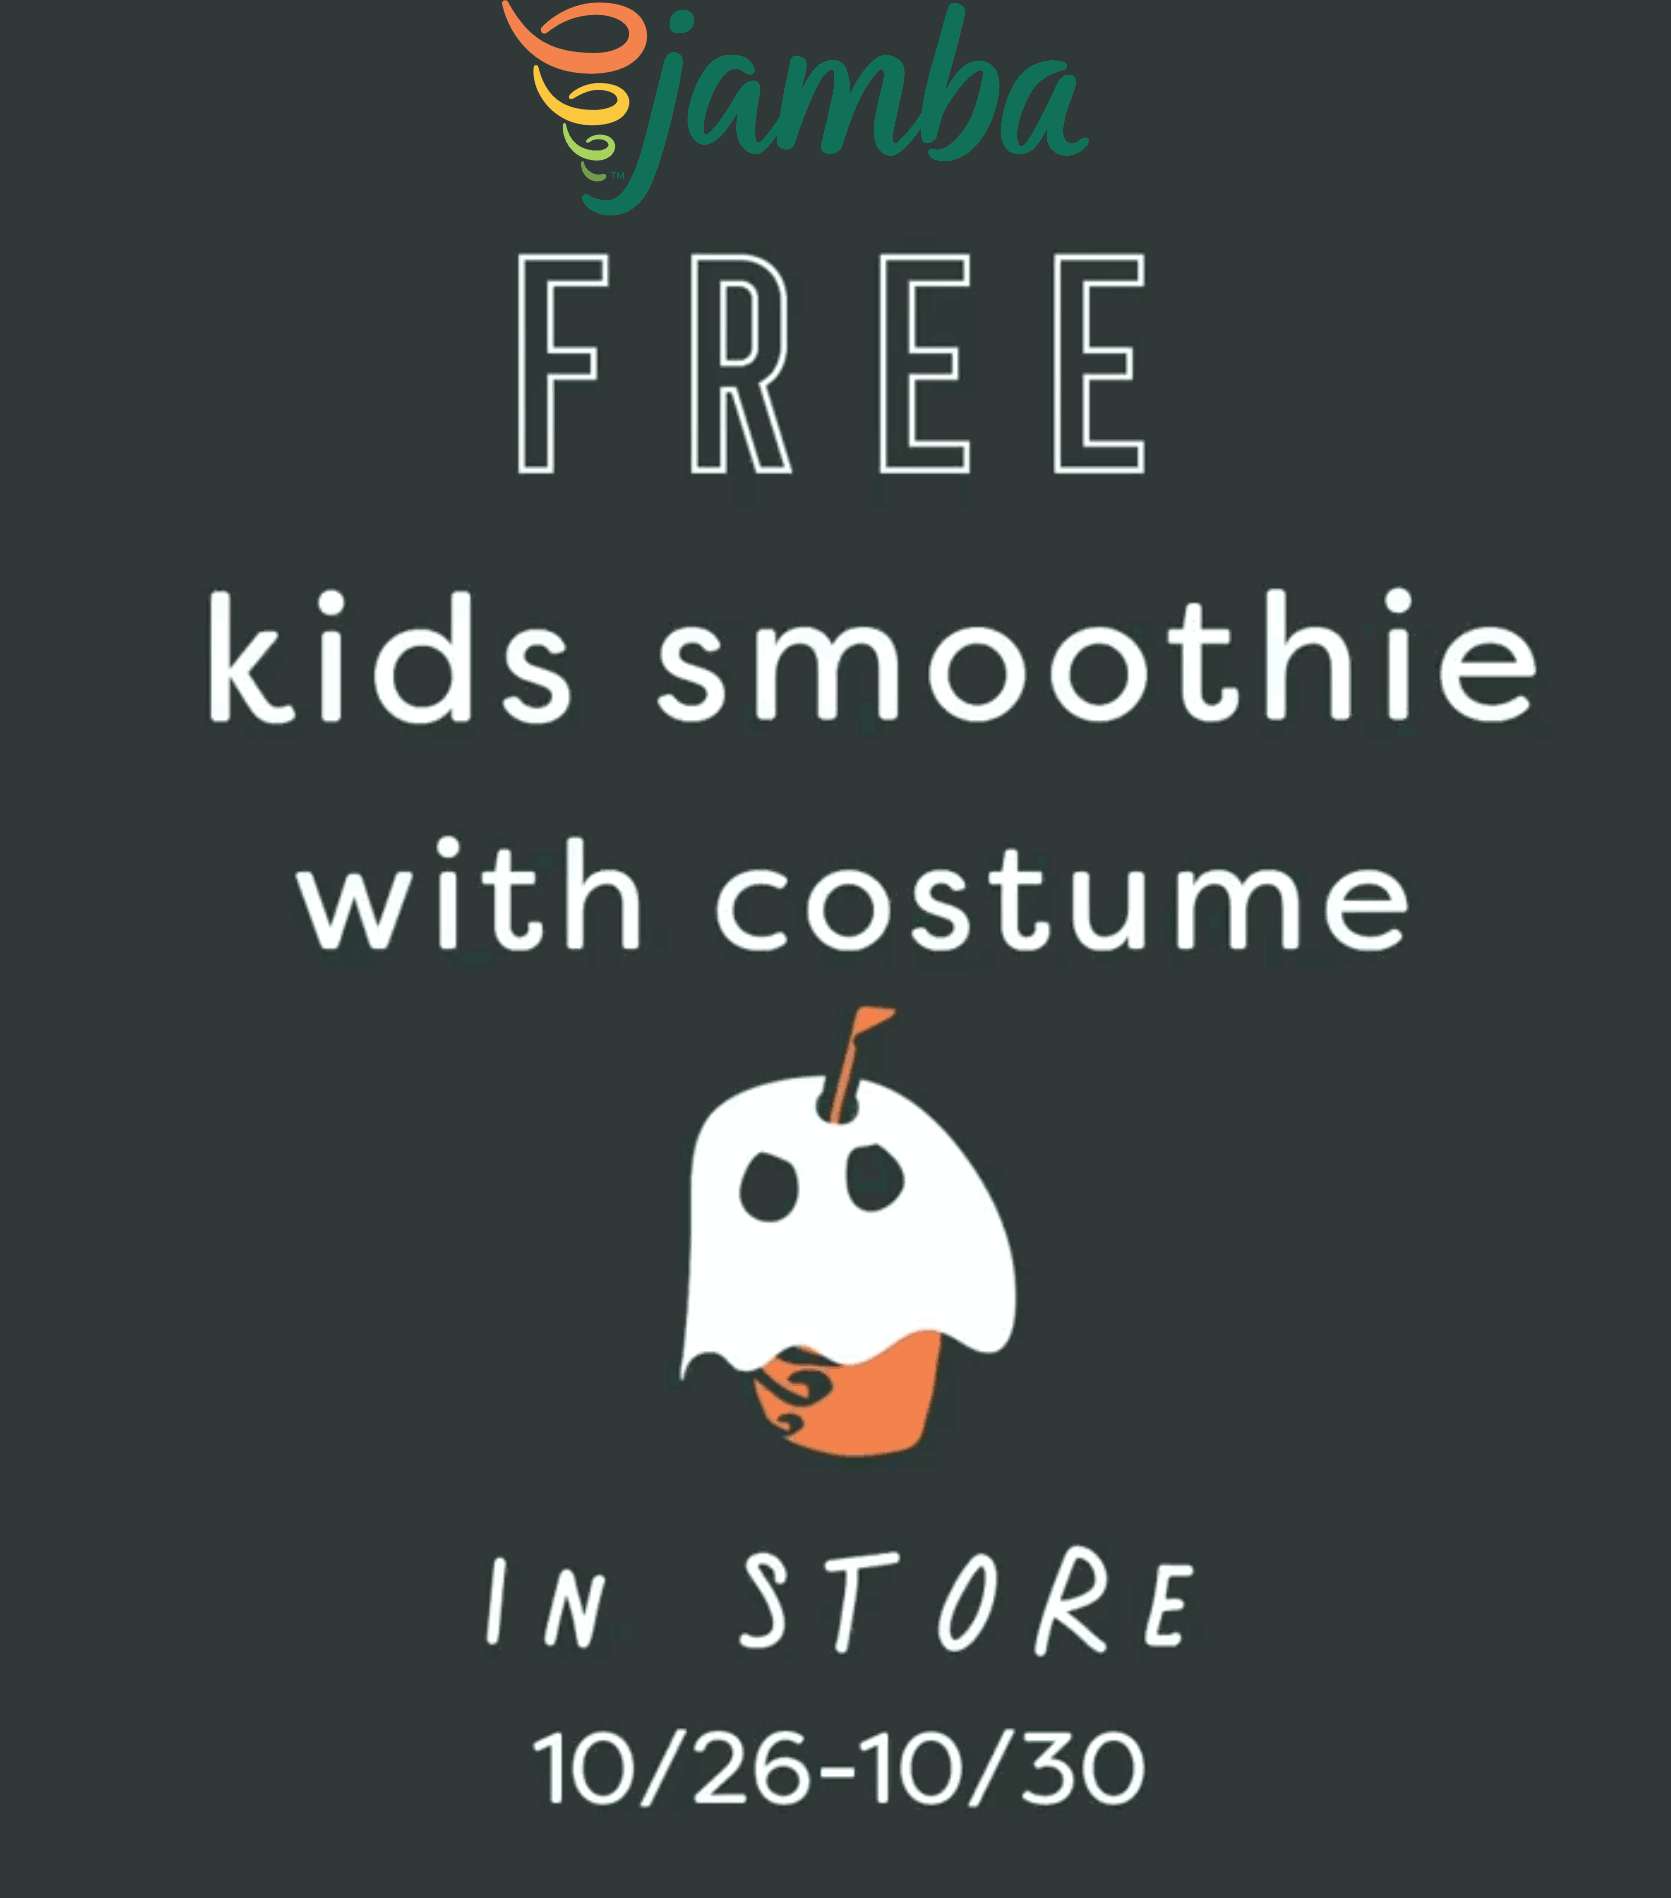 Jamba Juice Coupon November 2019 Free kids smoothie in costume at Jamba Juice